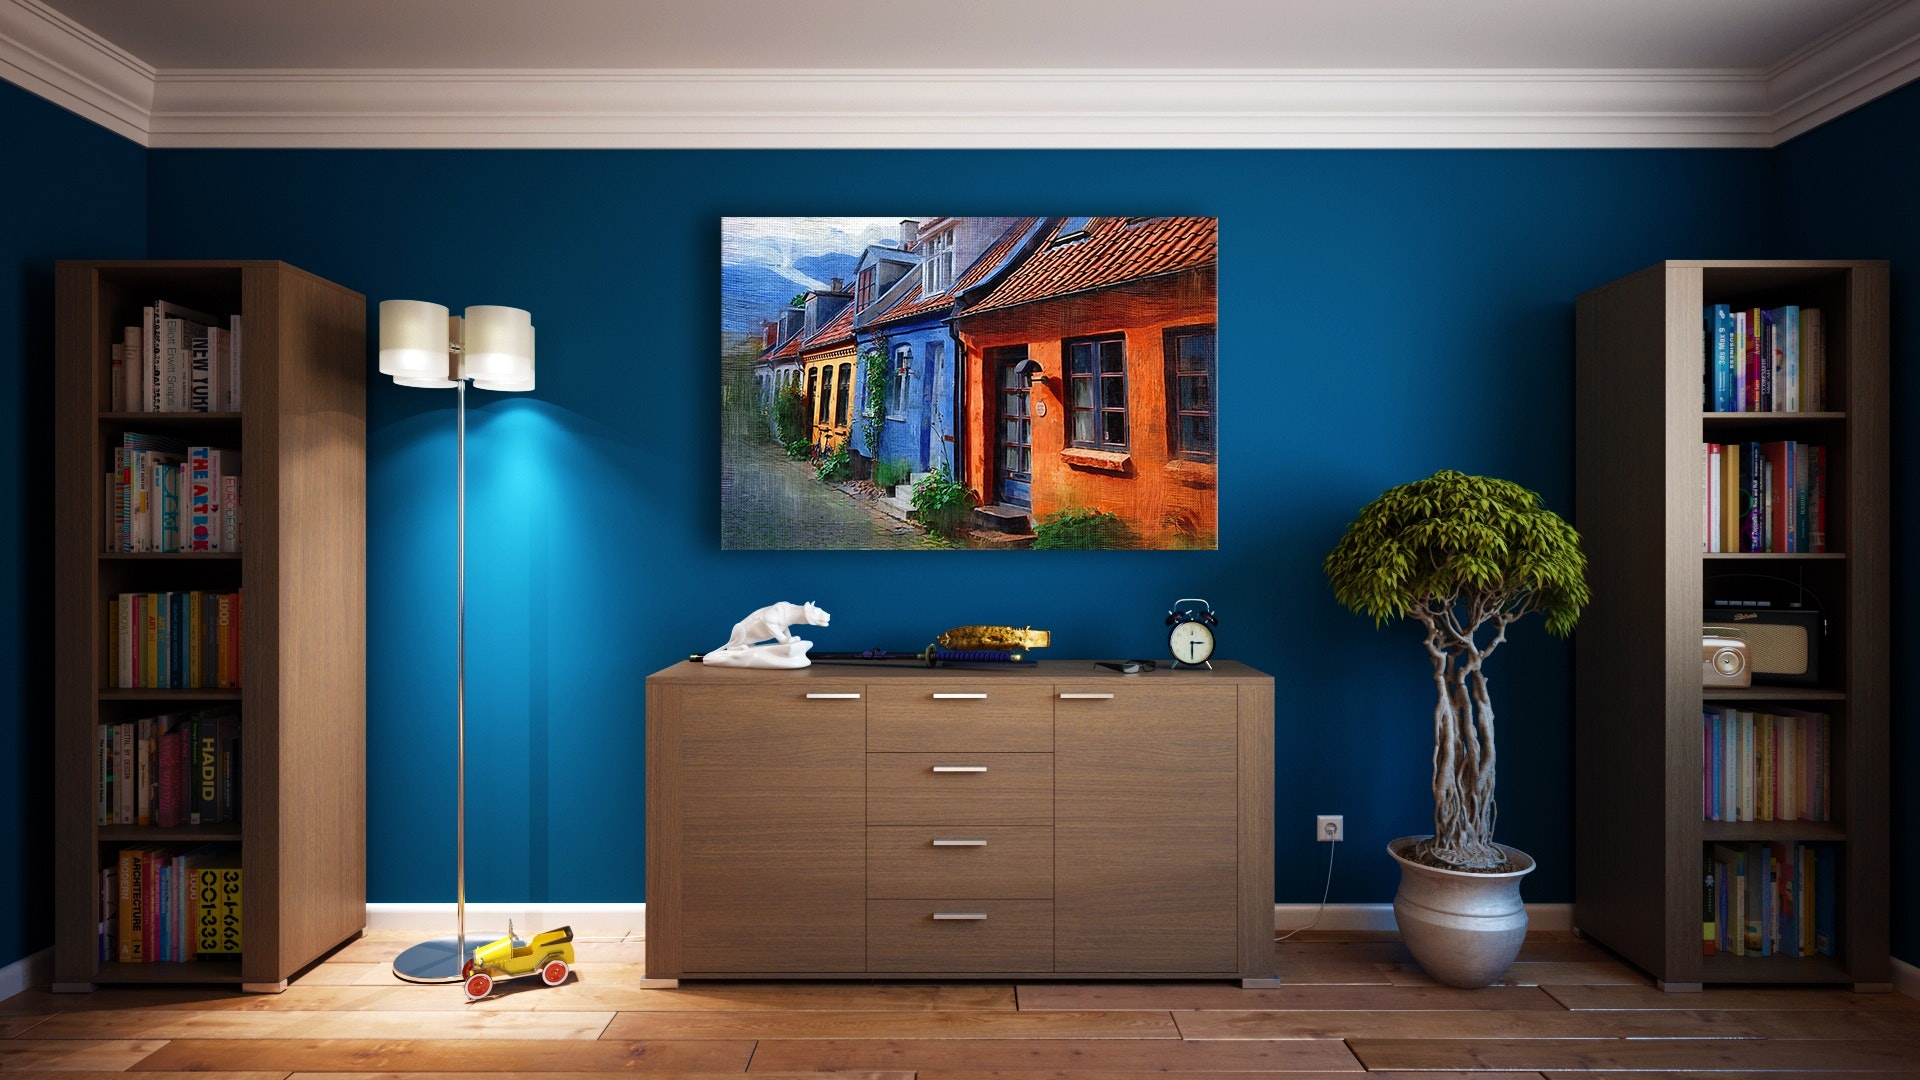 How to choose a proper wall decor?